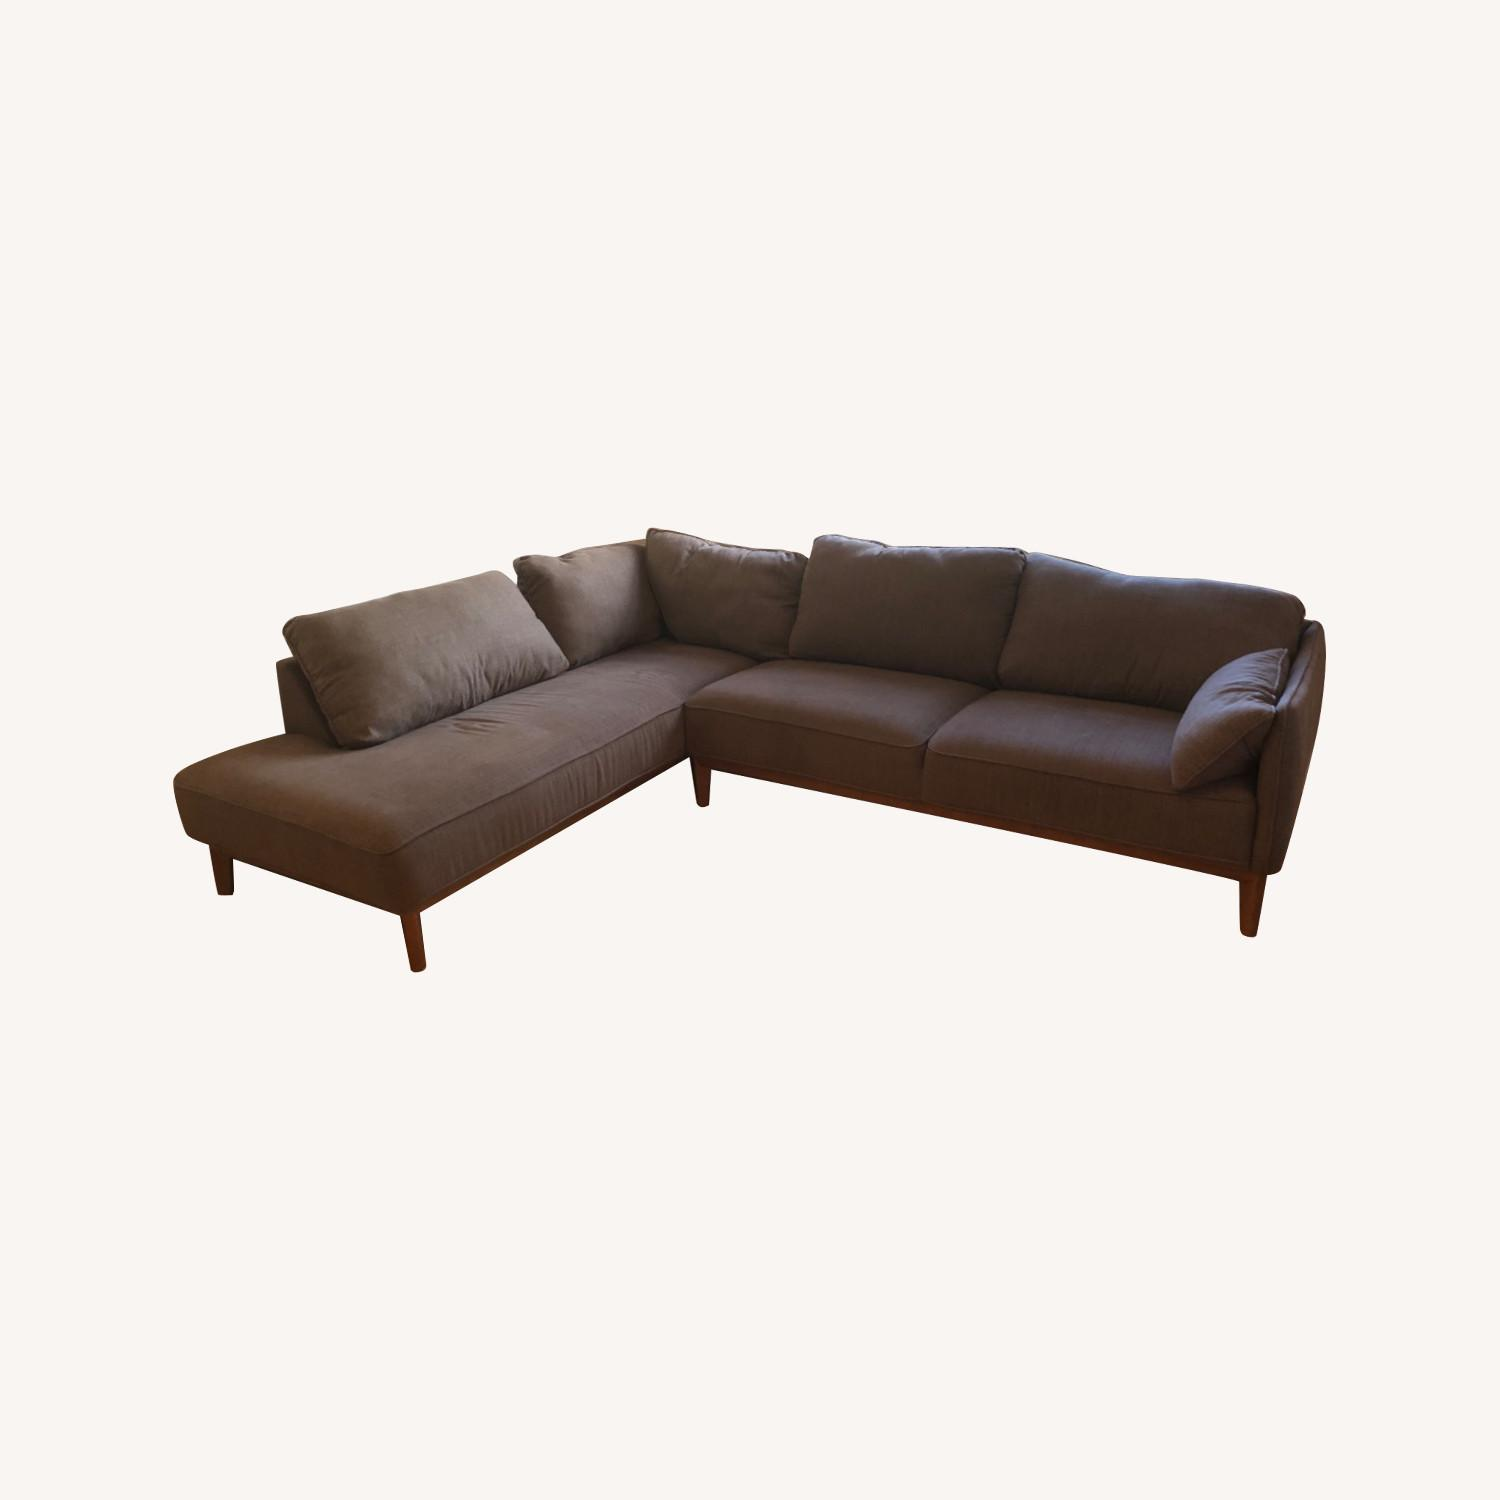 Macy's 2-Piece Grey Sectional - image-0